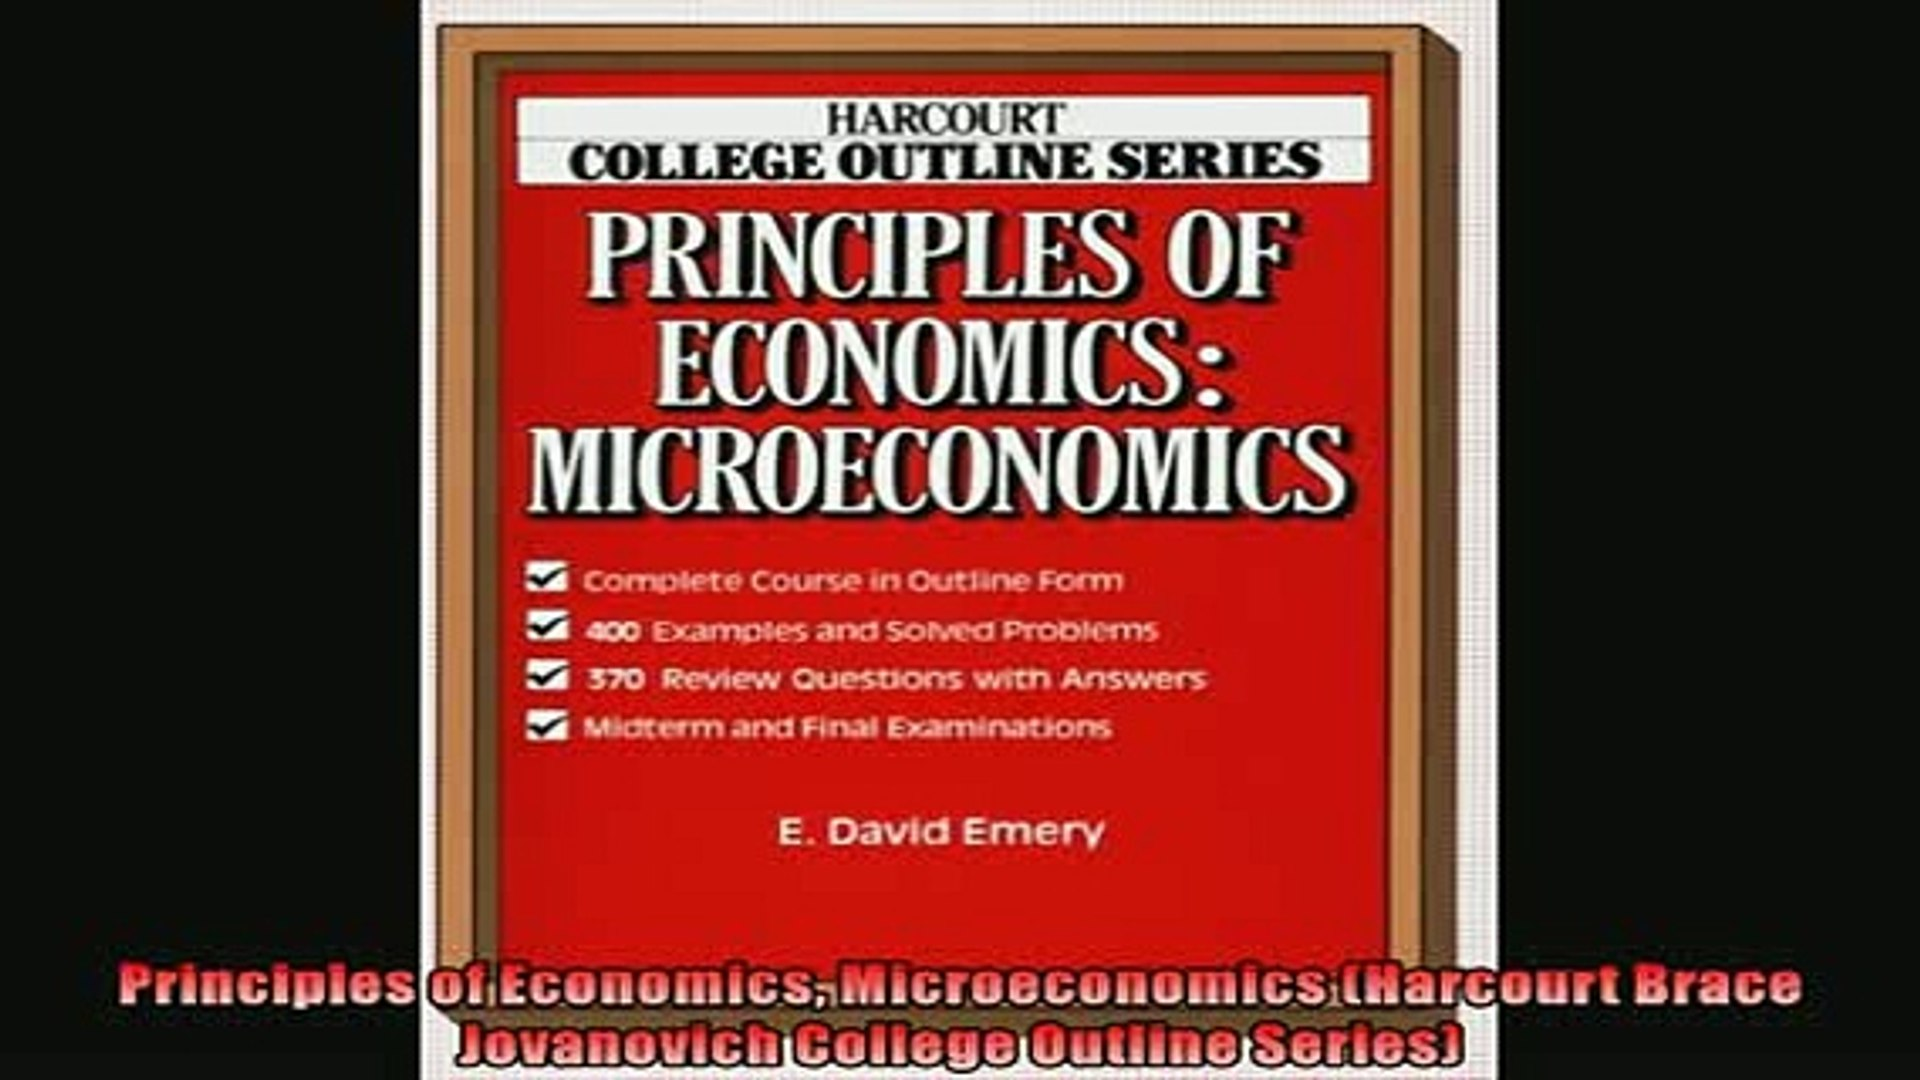 Popular book Principles of Economics Microeconomics Harcourt Brace  Jovanovich College Outline Series